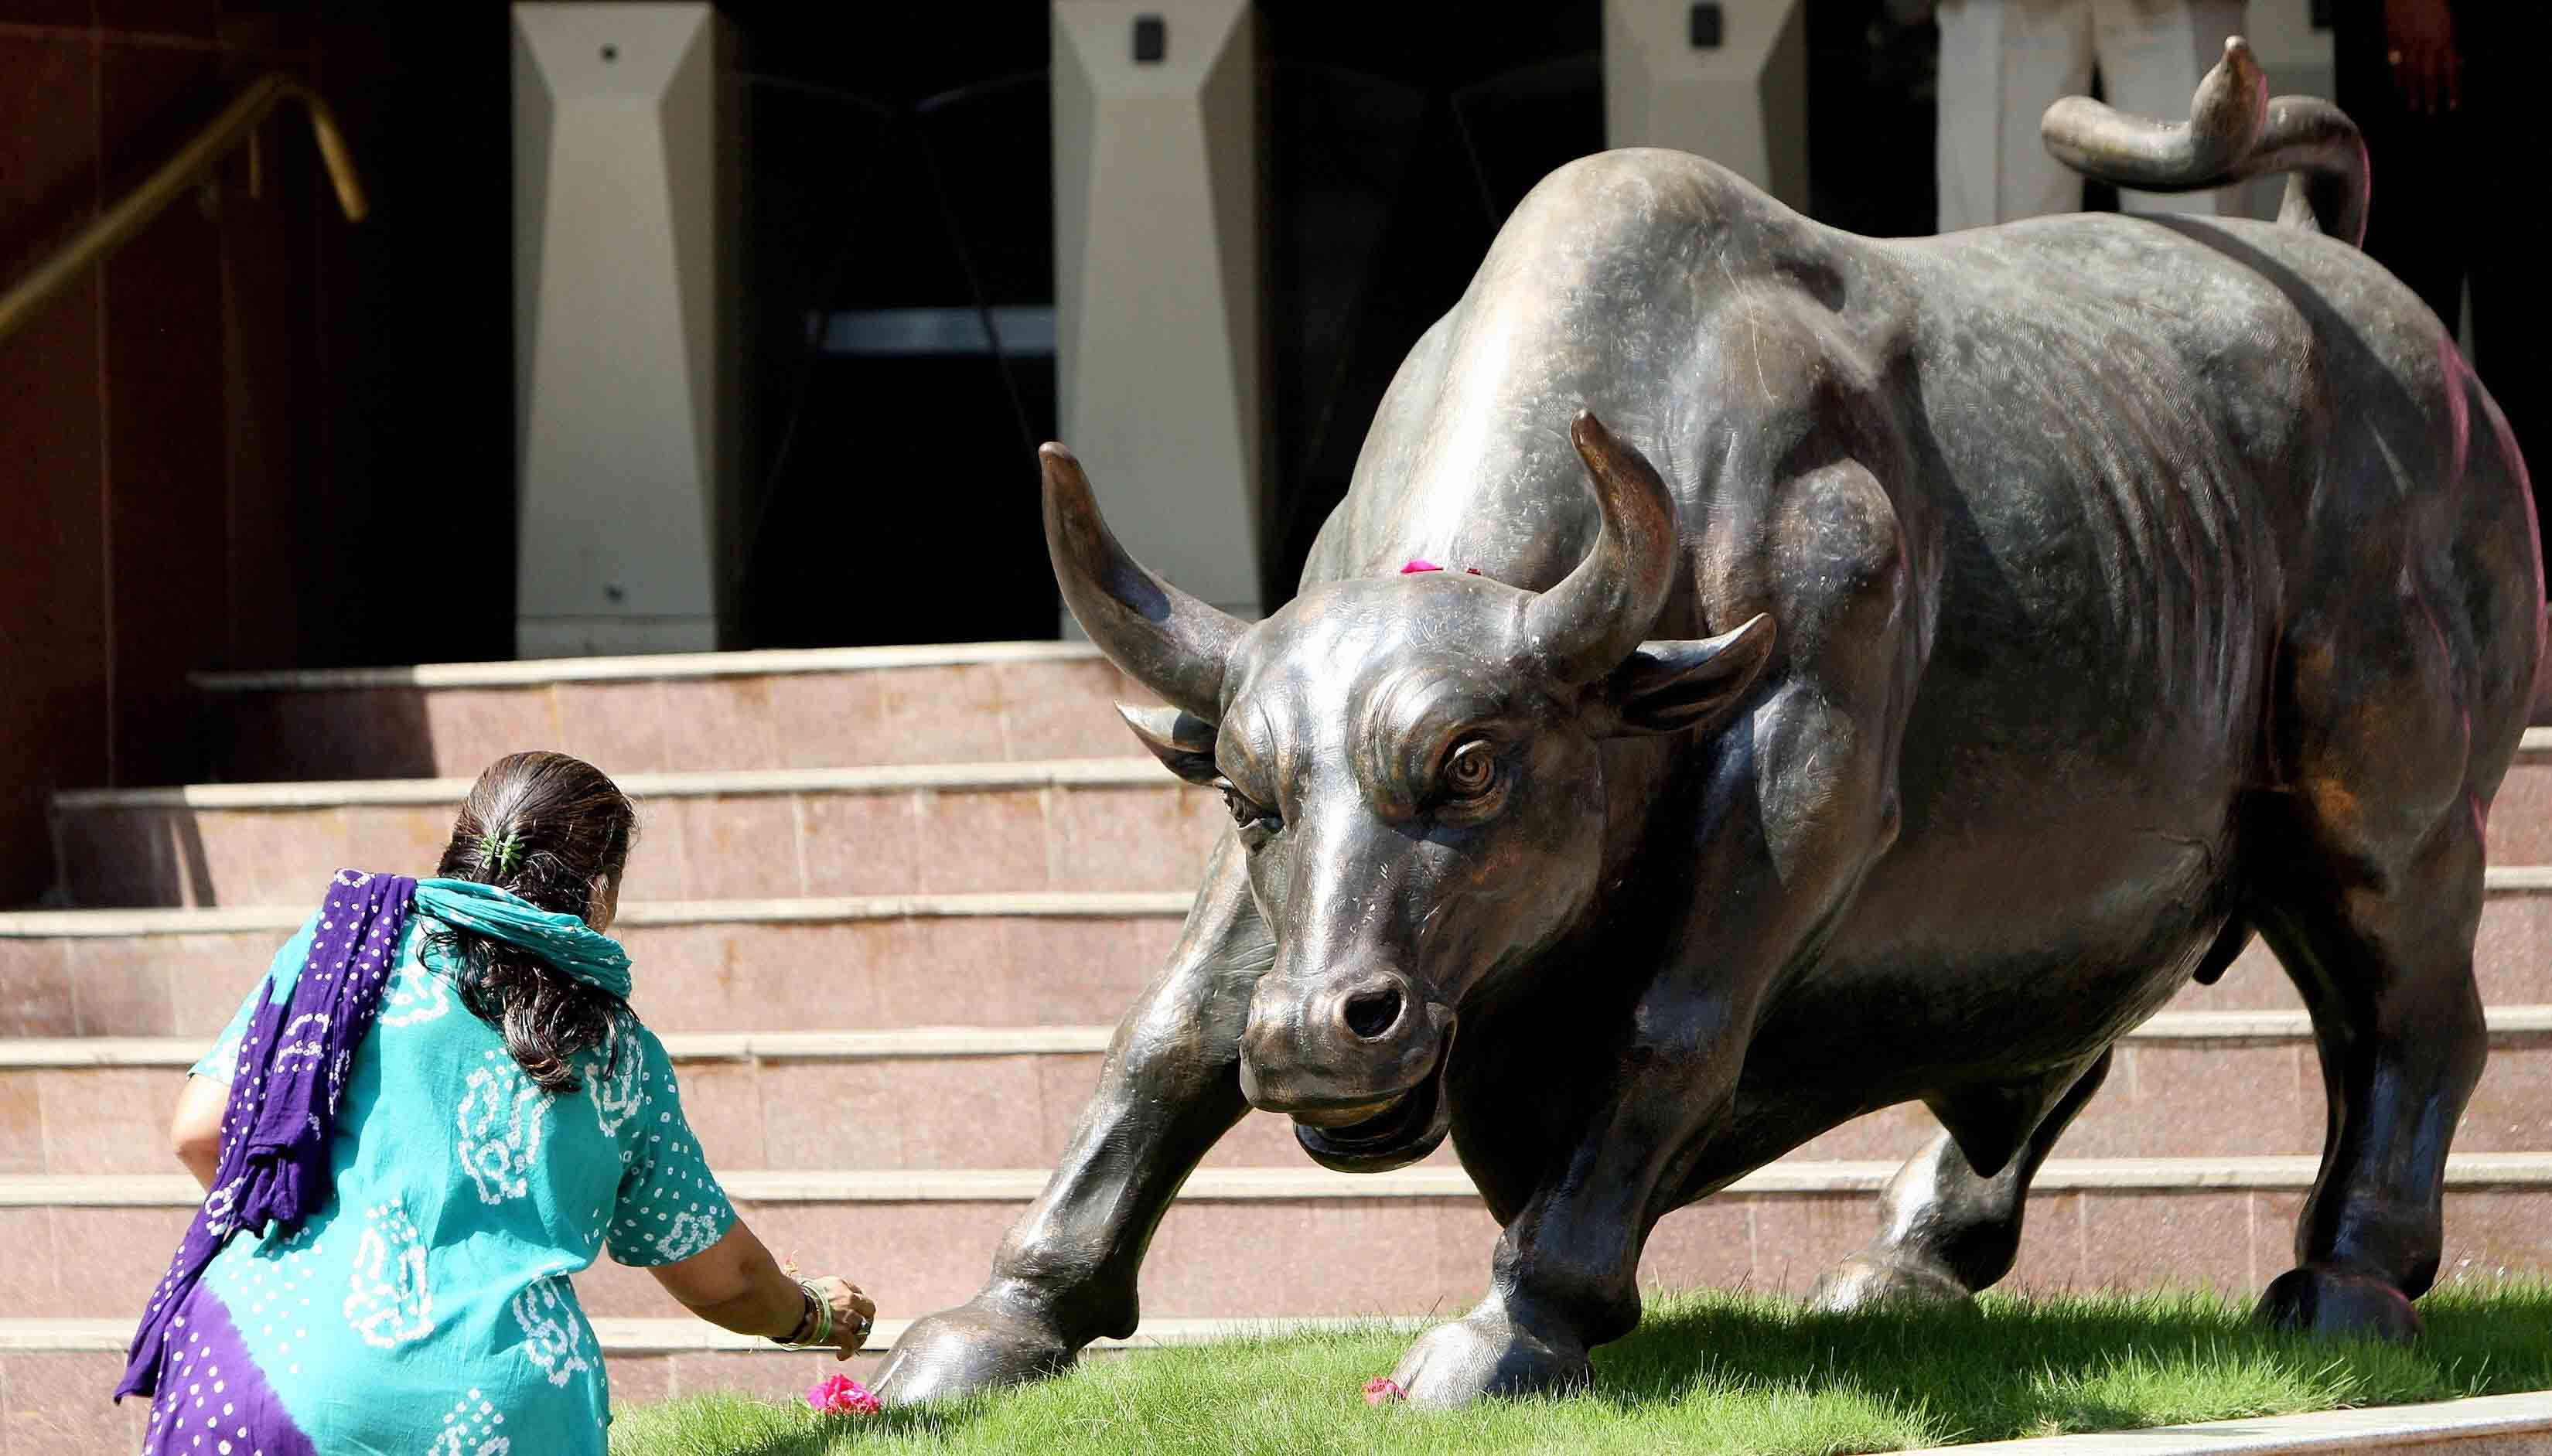 Indian woman making an offering at a statue of a bull in front of the stock market